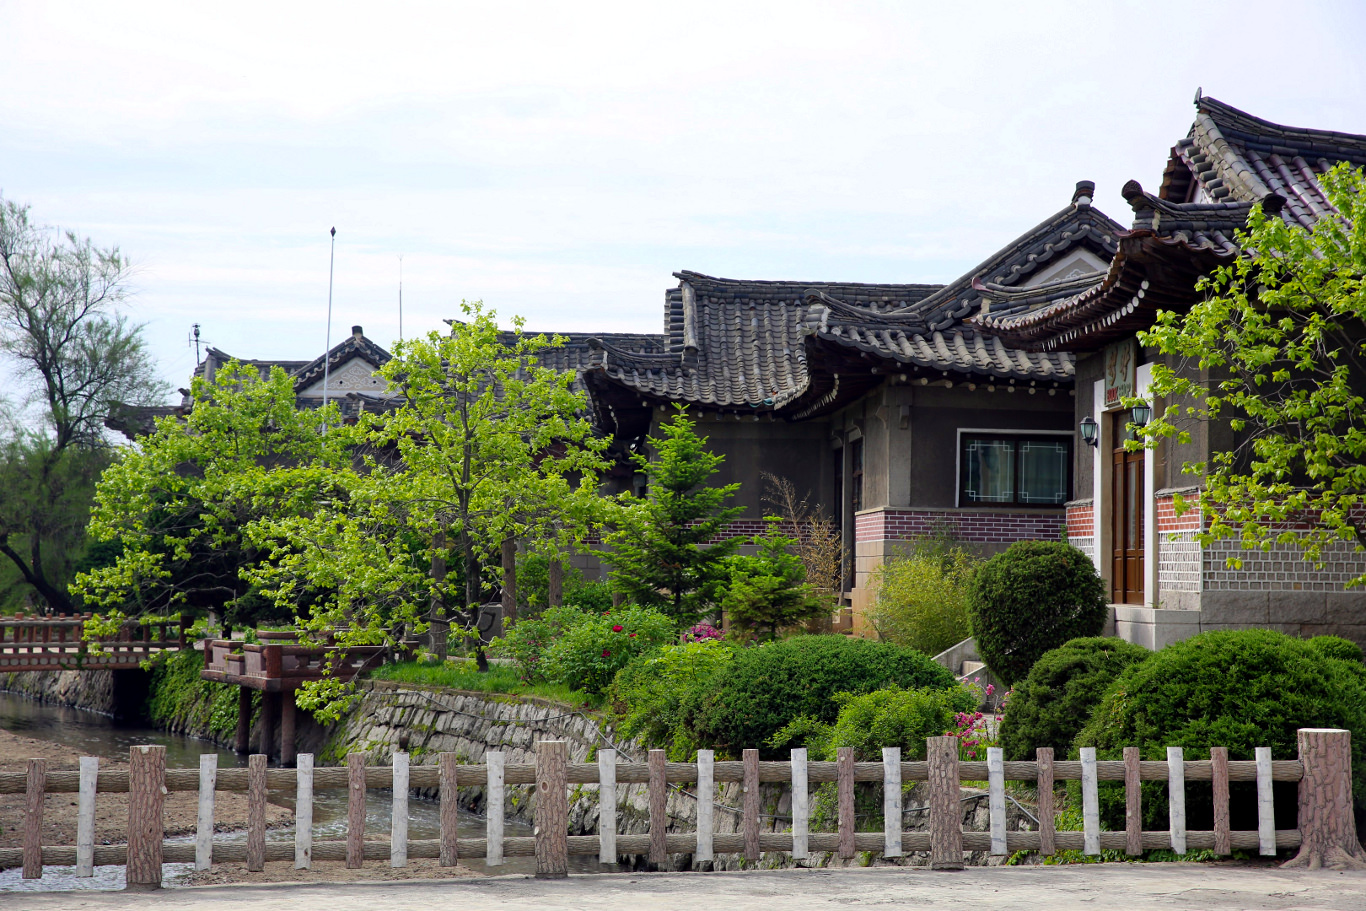 Minsok Folk Hotel in Kaesong, North Korea. This courtyard hotel is located in the old part of town. Picture taken by KTG Tours